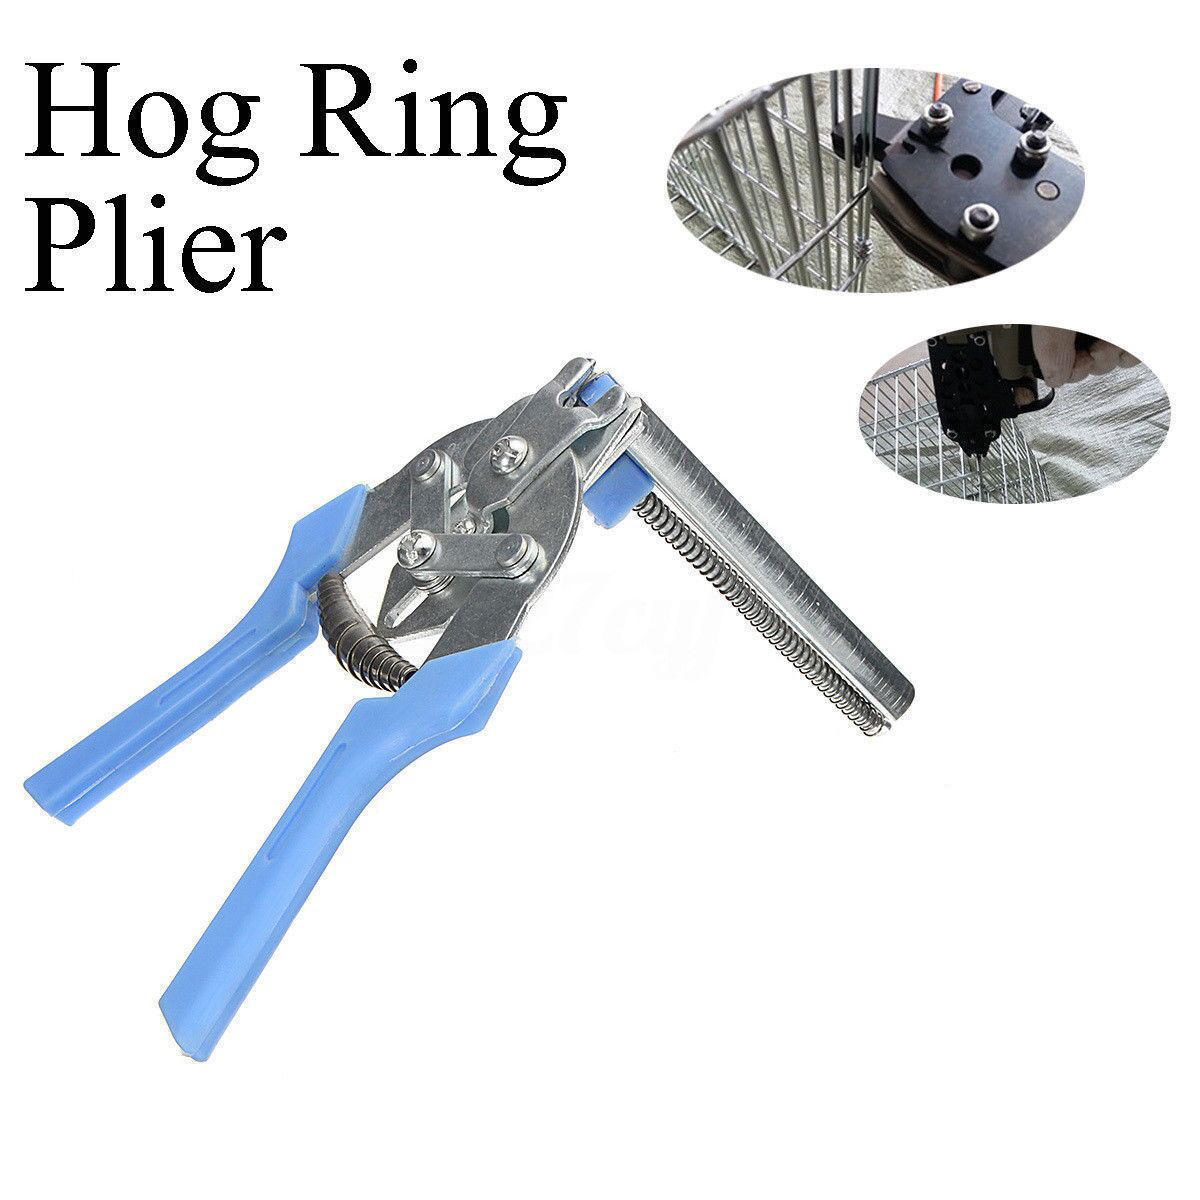 150 Hog Rings 3//4 for Automotive Upholstery Supplies Tools